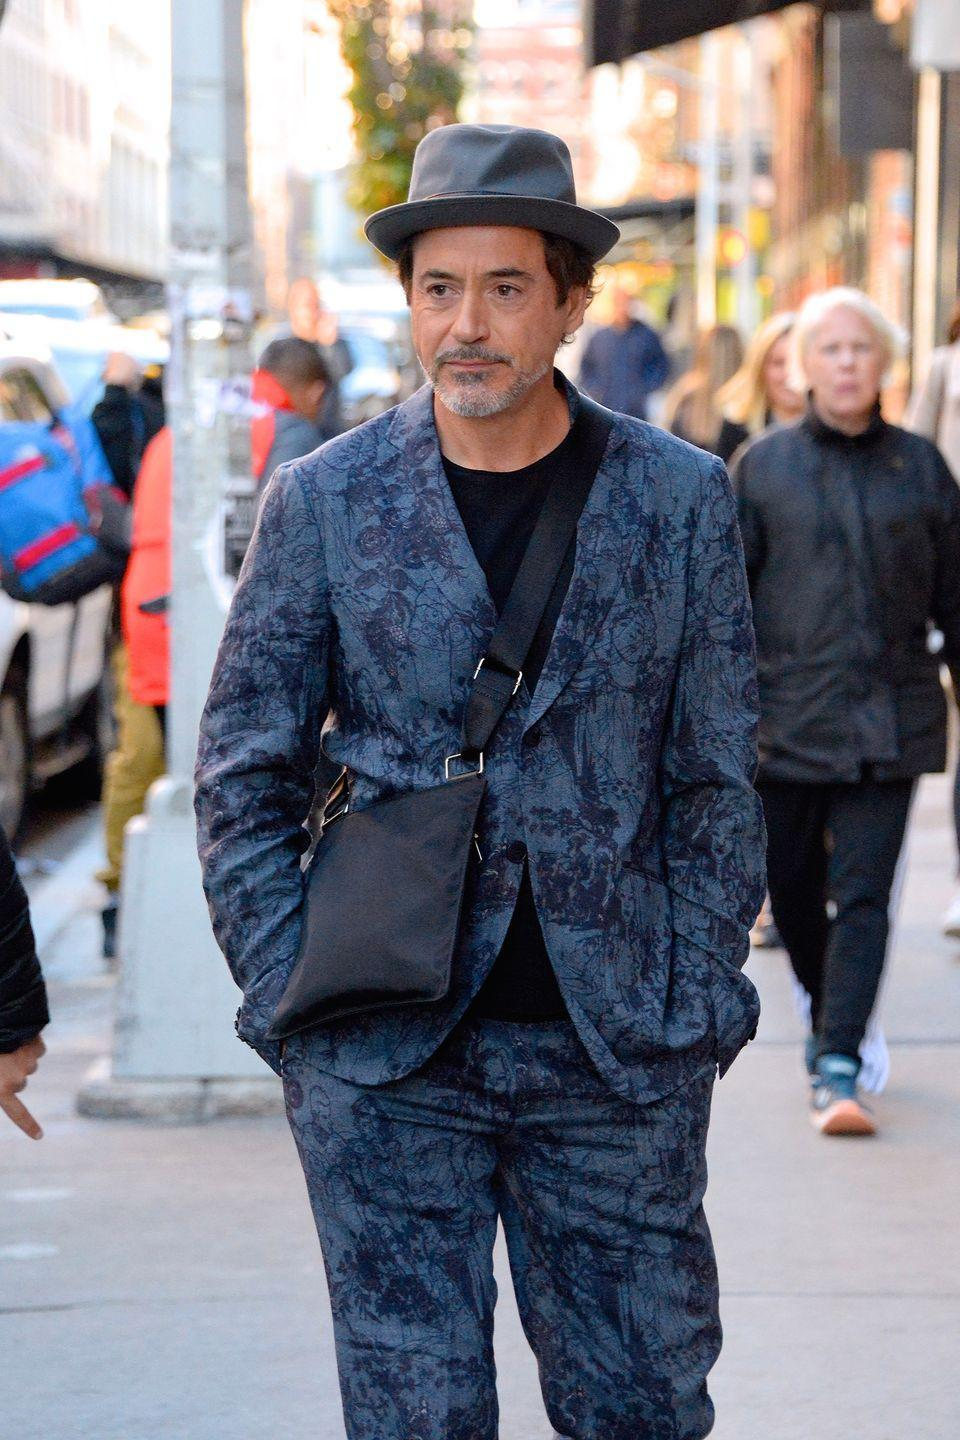 """<p>Clearly, Downey Jr.'s failure to connect with <em>SNL </em>audiences was not a harbinger of things to come. Two Academy Award nominations, three Golden Globe awards, and multiple movie franchises later, he's one of Hollywood's most universally loved actors.</p><p><strong>RELATED:</strong> <a href=""""https://www.goodhousekeeping.com/life/entertainment/g3768/hot-80s-actors-where-are-they-now/"""" rel=""""nofollow noopener"""" target=""""_blank"""" data-ylk=""""slk:Your Favorite '80s Heartthrobs: Where Are They Now?"""" class=""""link rapid-noclick-resp"""">Your Favorite '80s Heartthrobs: Where Are They Now?</a></p>"""